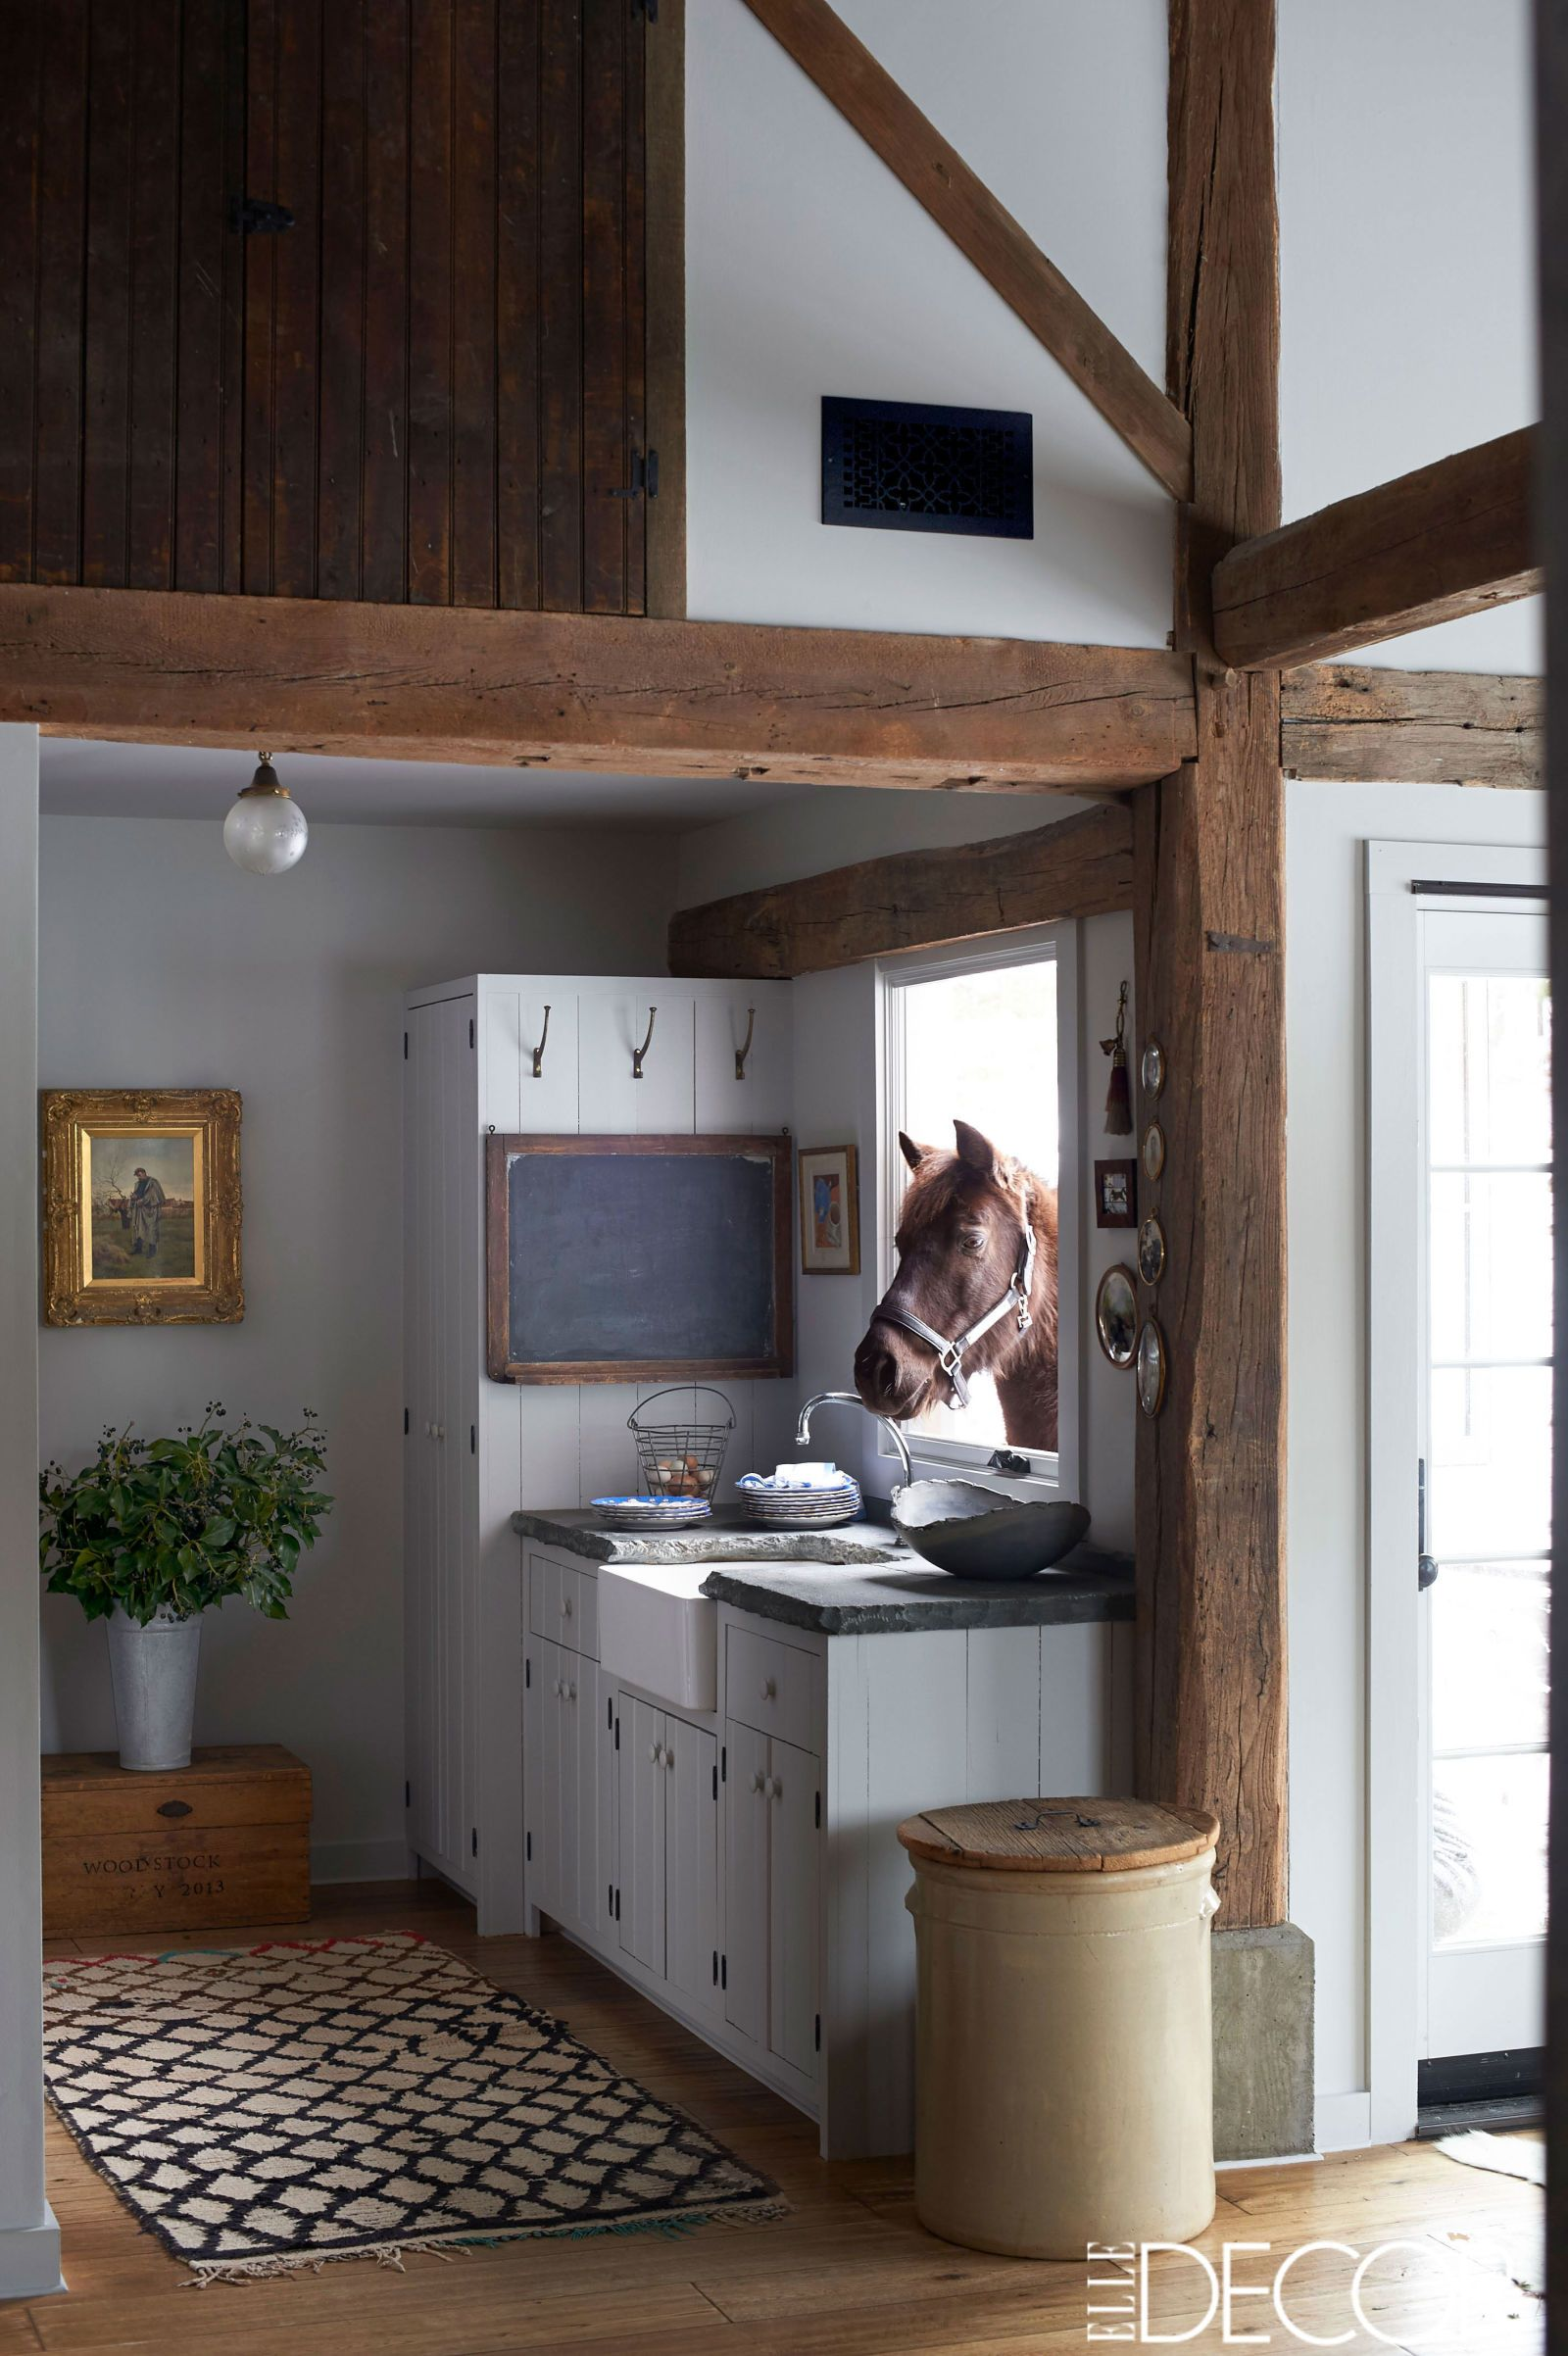 HOUSE TOUR: A Brilliantly Reimagined Barn Filled To The Brim With ...